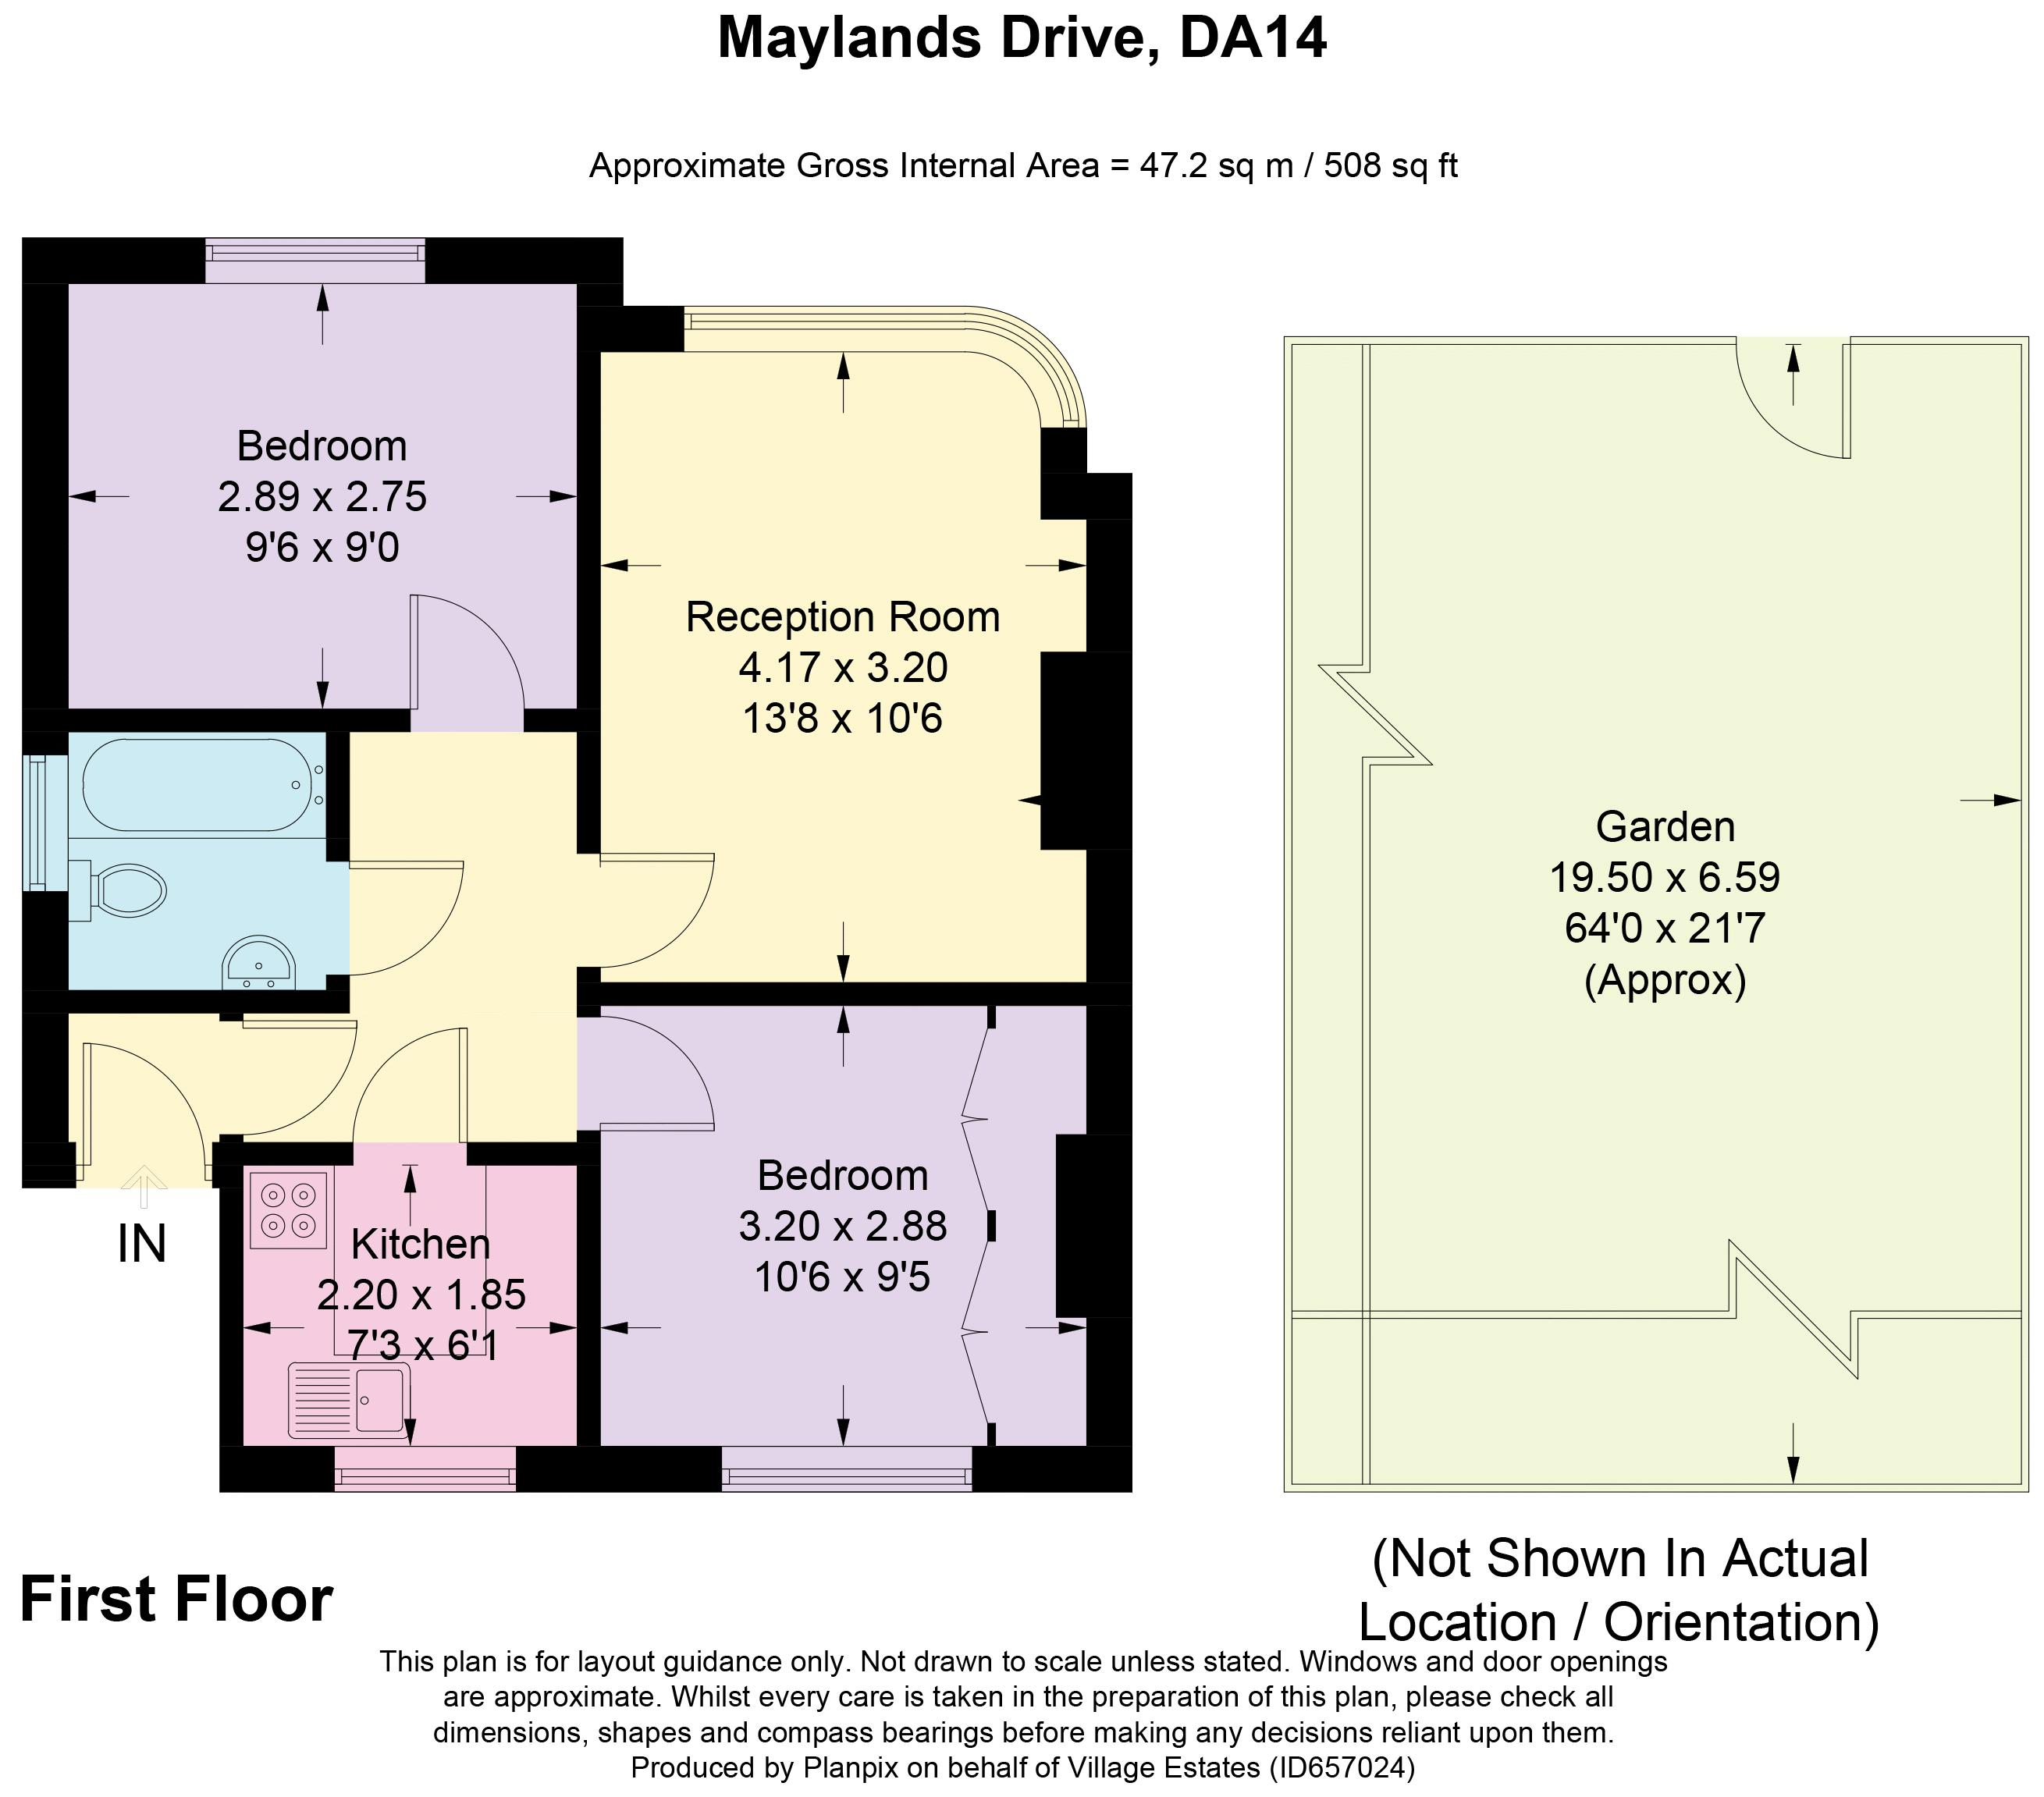 Maylands Drive Floorplan